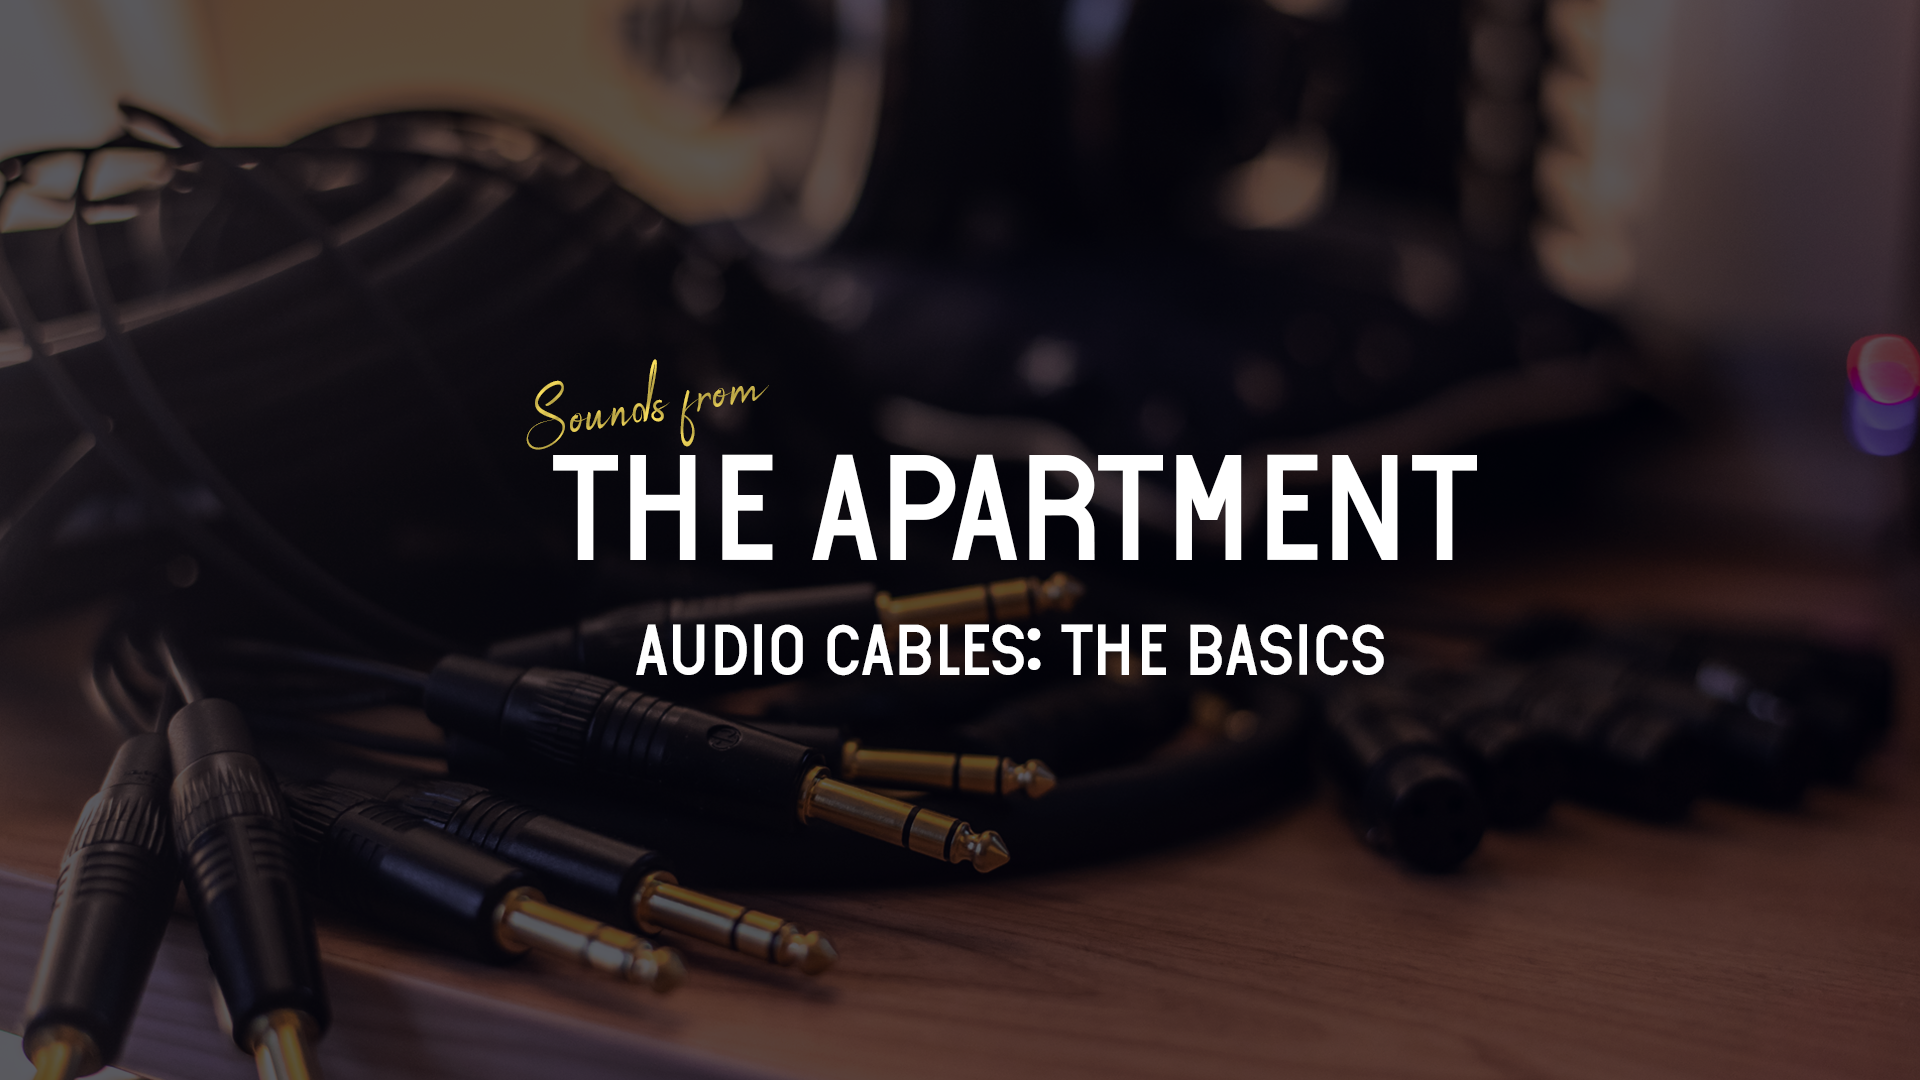 Sounds from the apartment article audio cables the basics